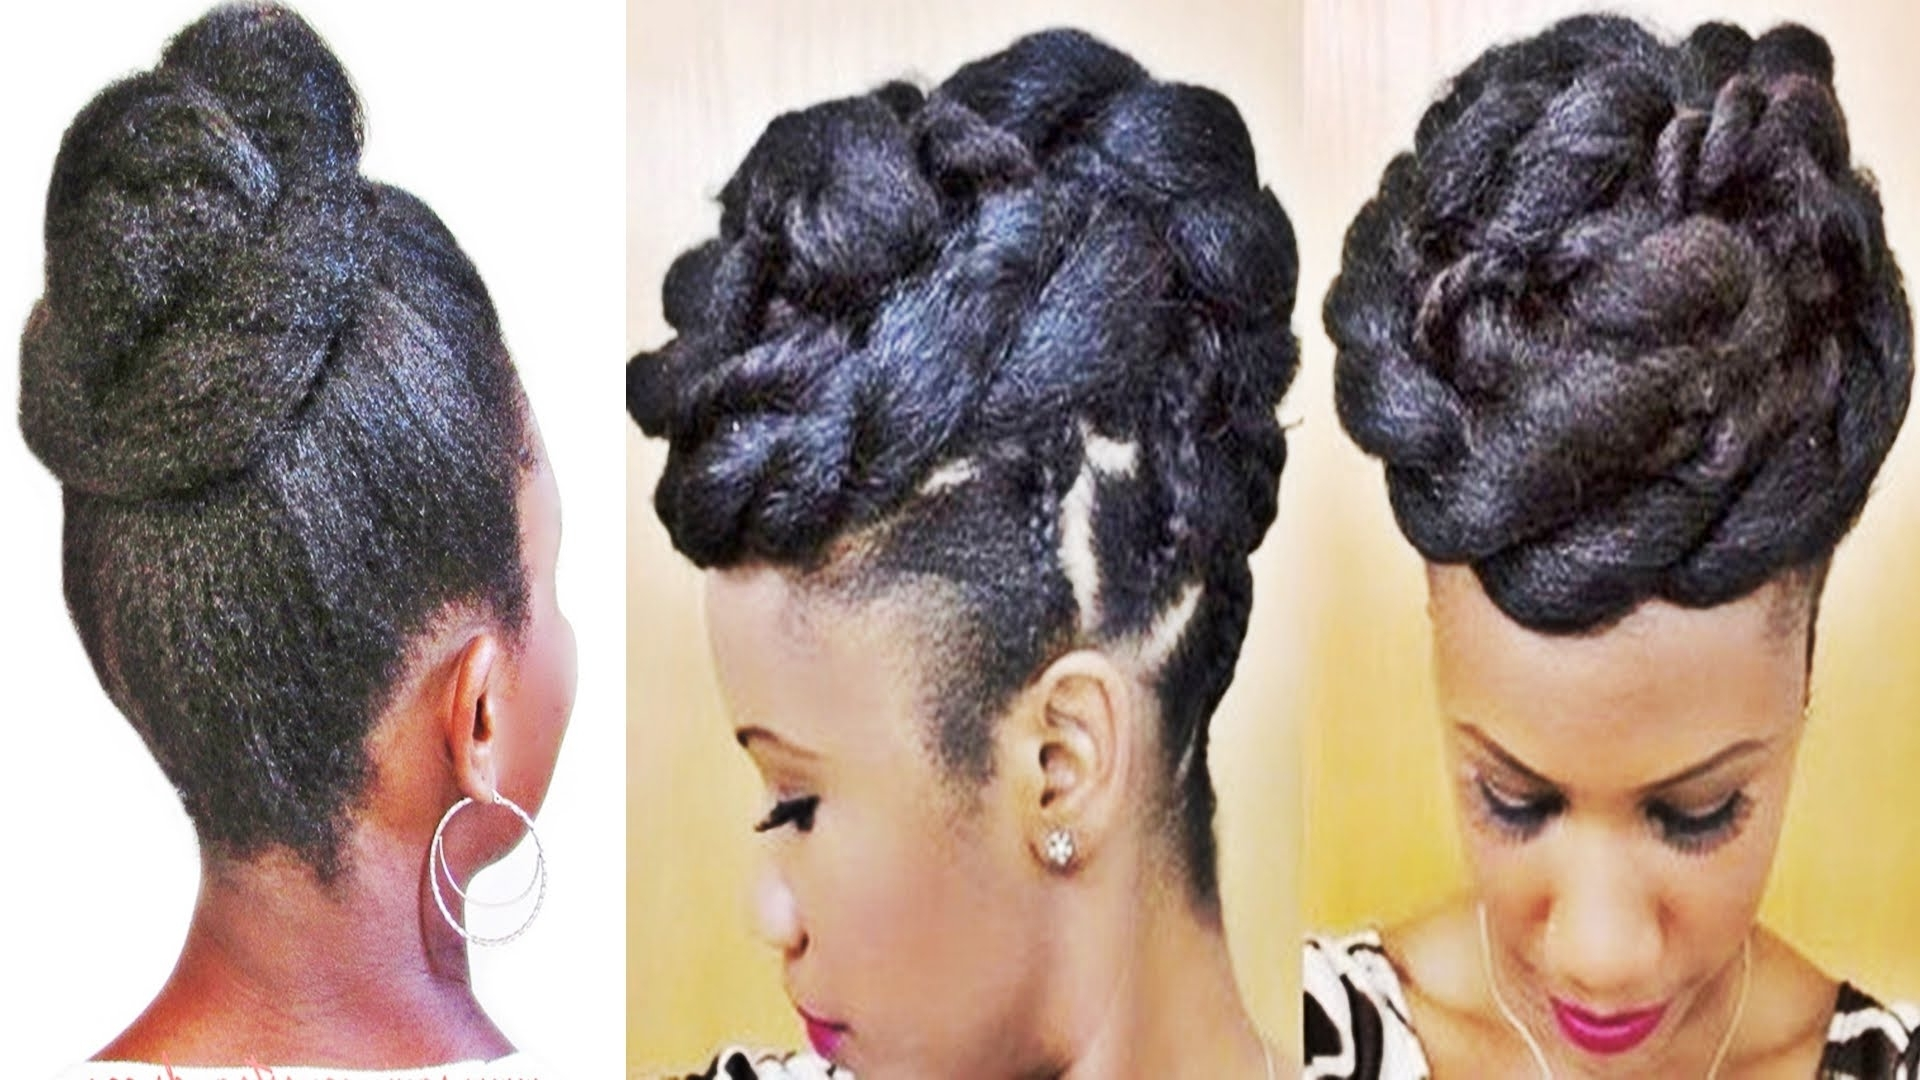 Braids And Twists Updo Hairstyle For Black Women – Youtube Regarding Hair Updos For Black Women (View 6 of 15)